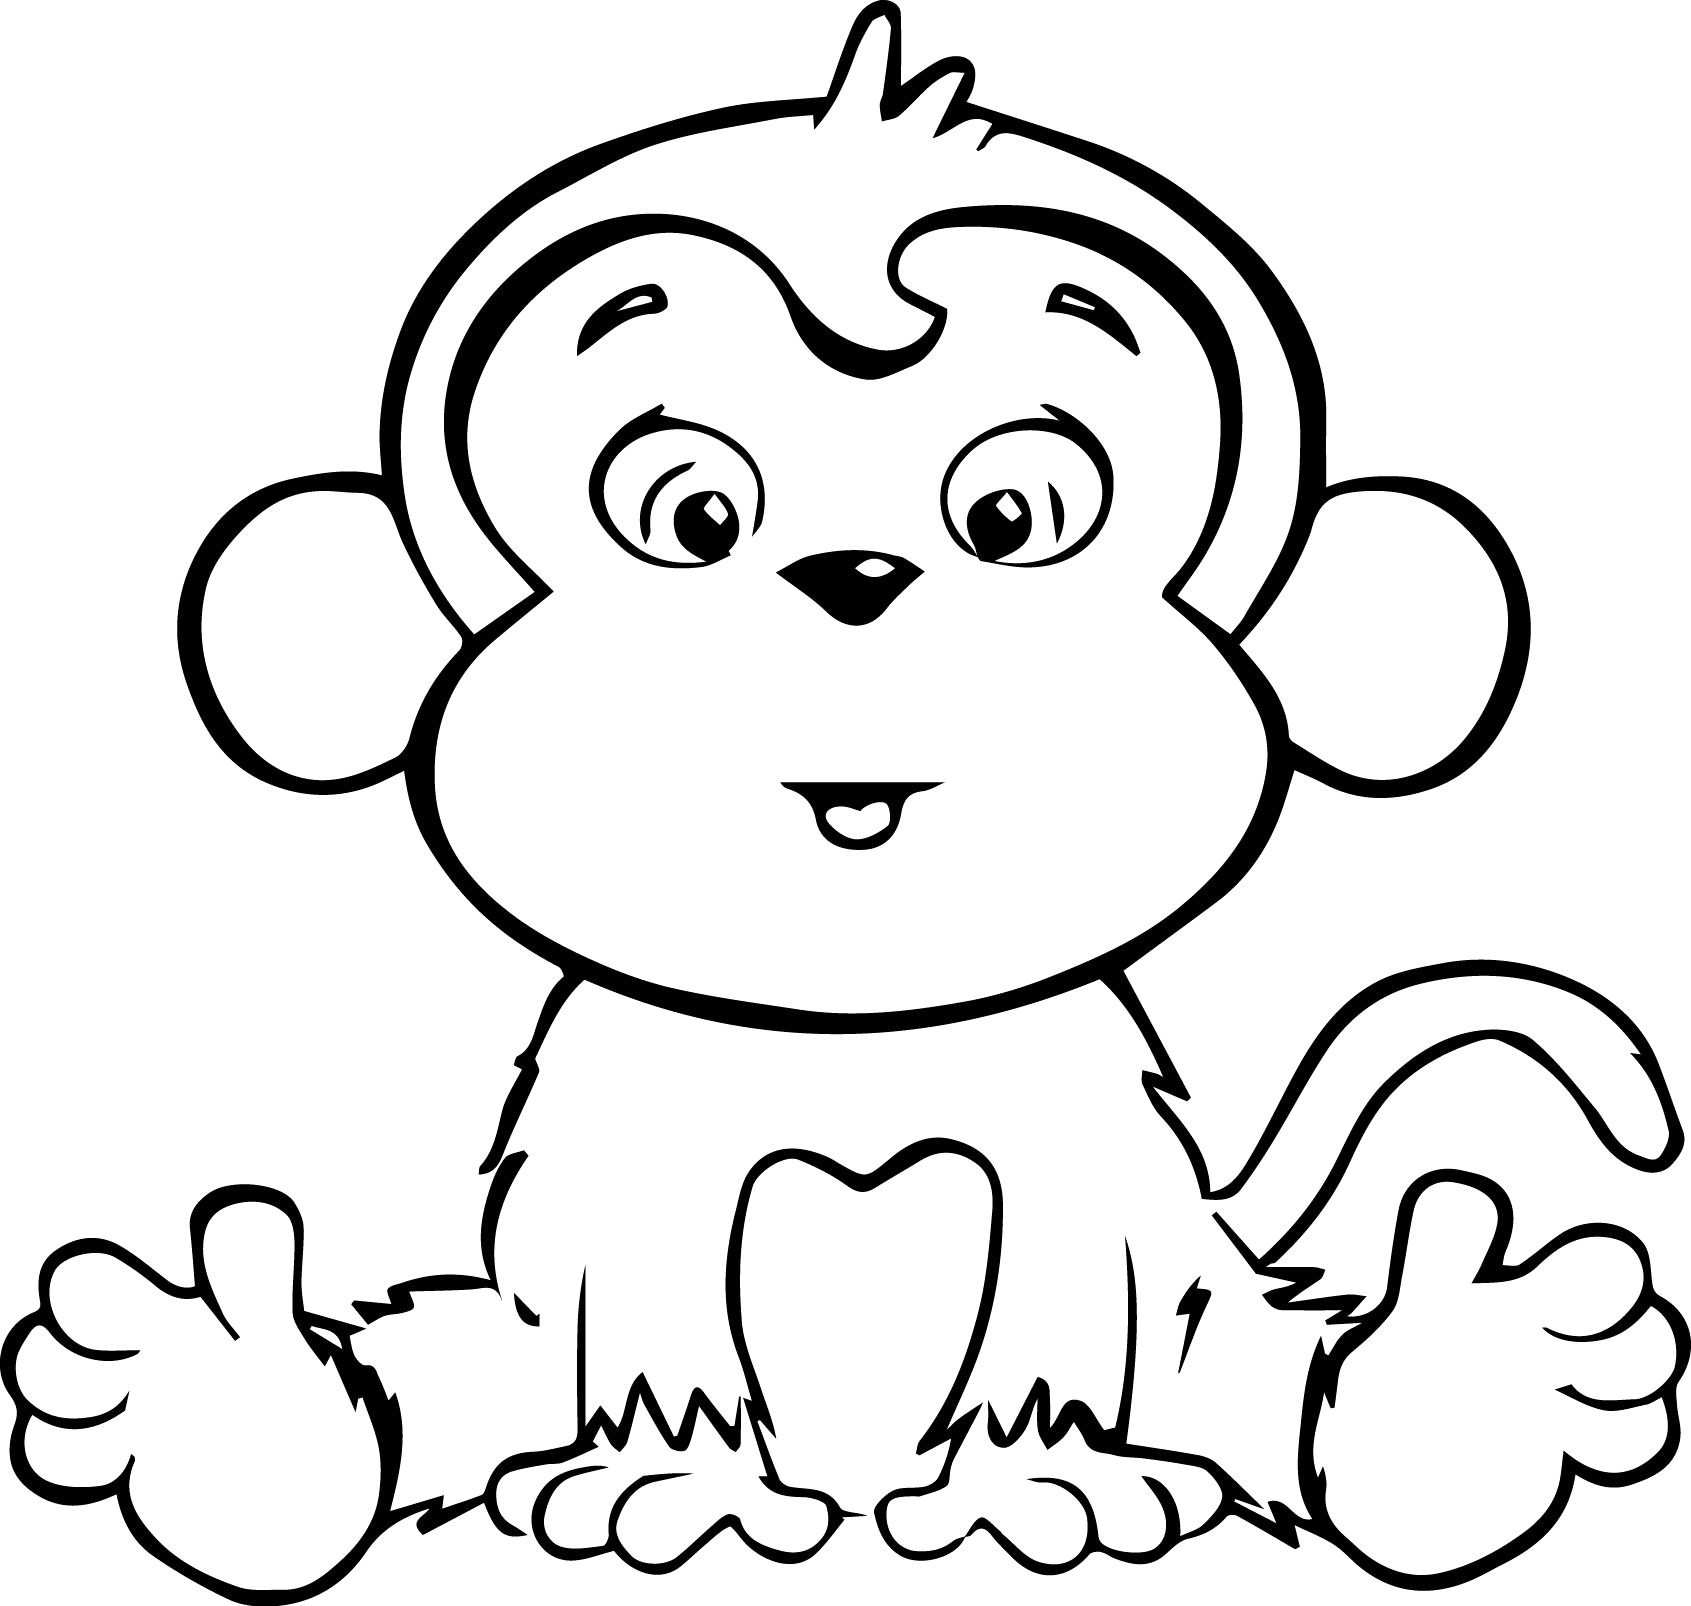 1691x1606 New Coloring Pages Cartoon Monkeys Cool Inspiring Ideas Monkey